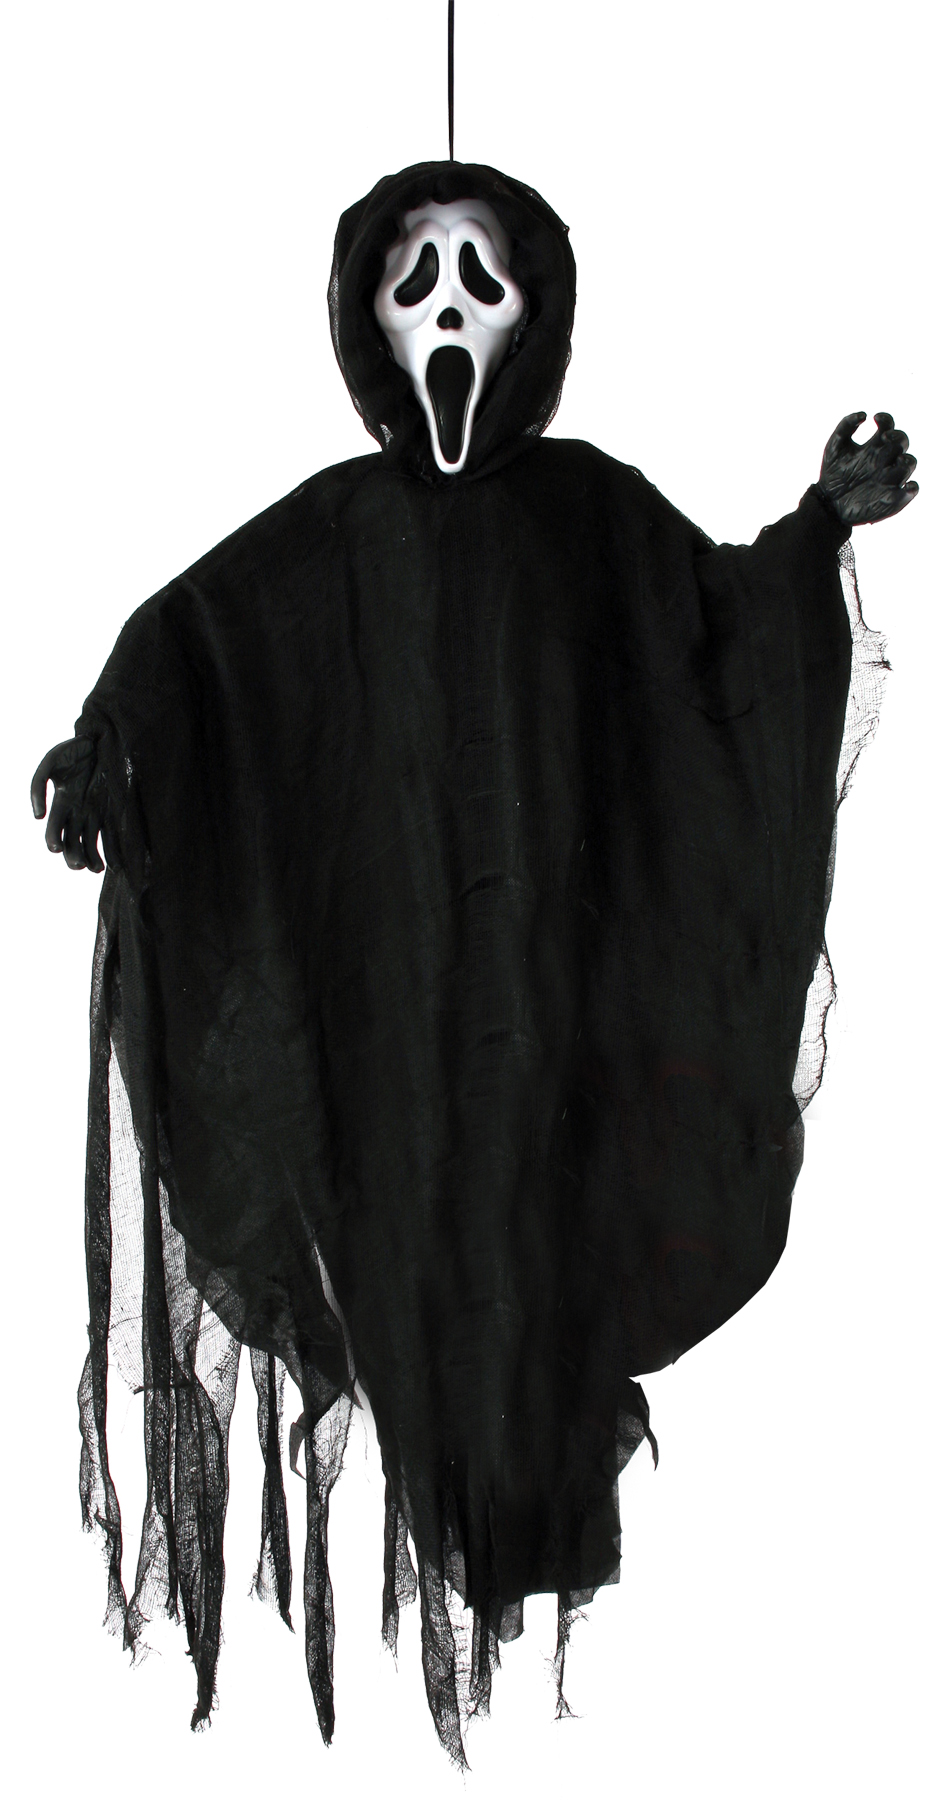 3ft Ghost Face Hanging Figure